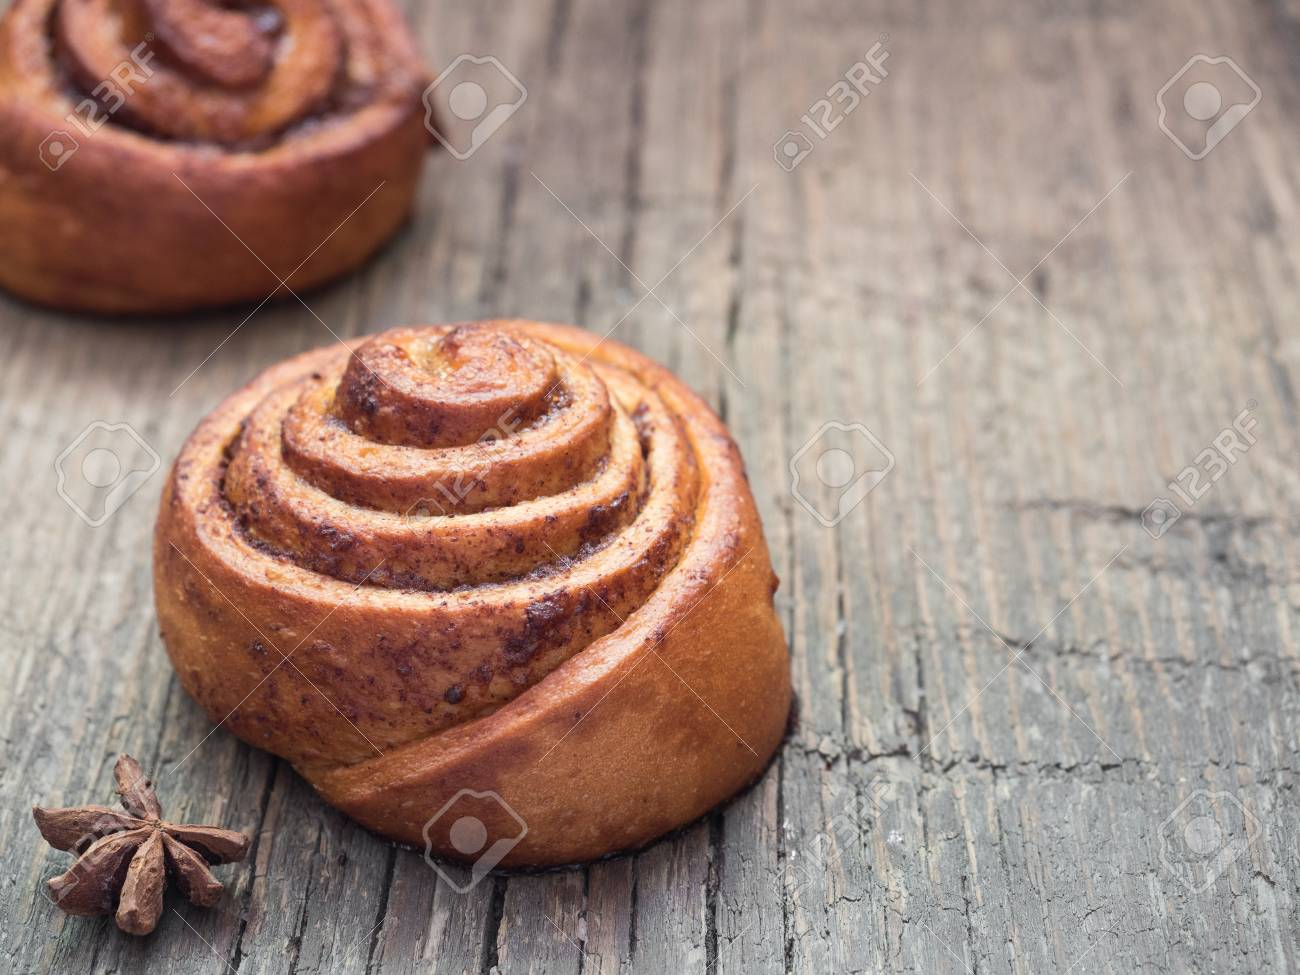 Confectionery Baking Sweet Fresh Soft Roll Bun With Cinnamon 1300x975